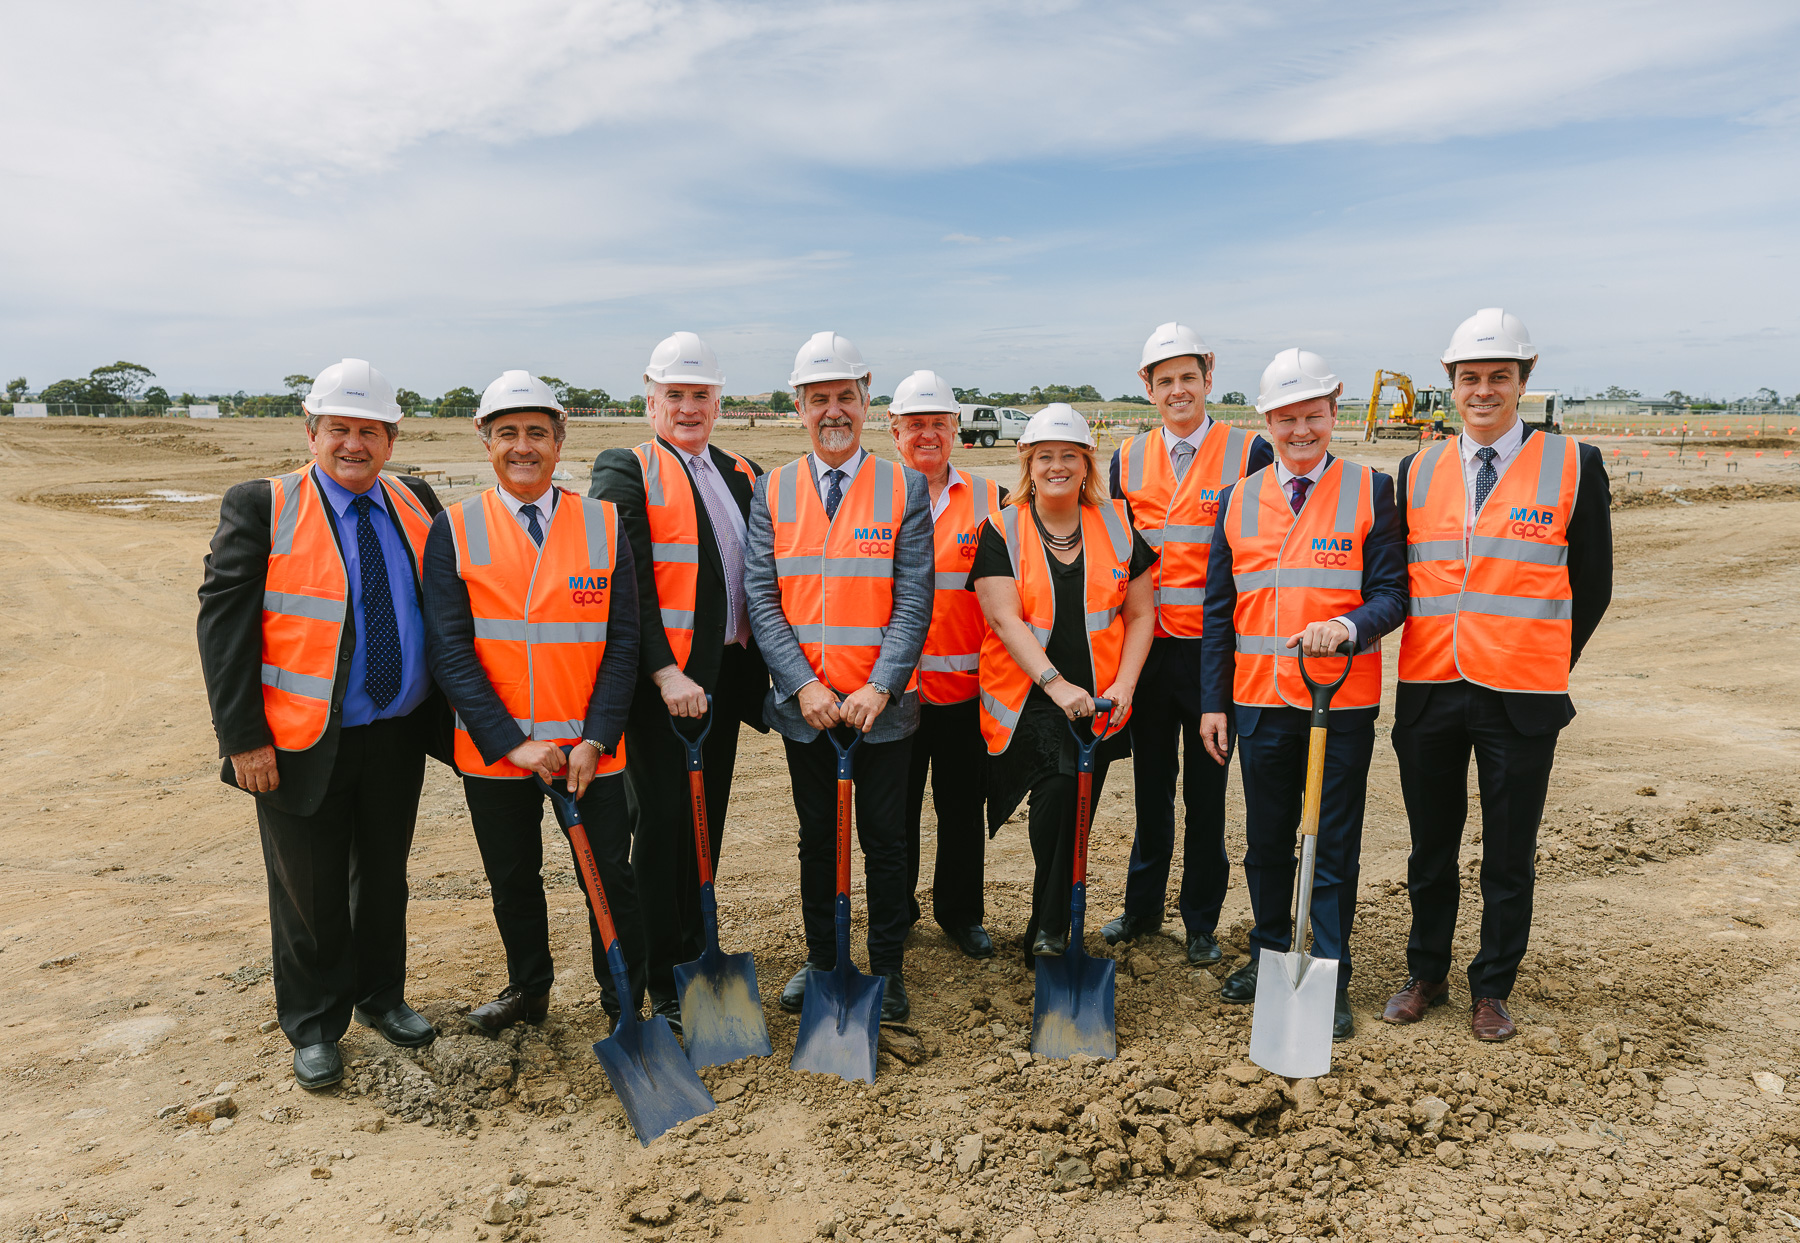 The project's launch event was held on 15 February which included a sod turning conducted by MAB Corporation and Gibson Property Corporation.